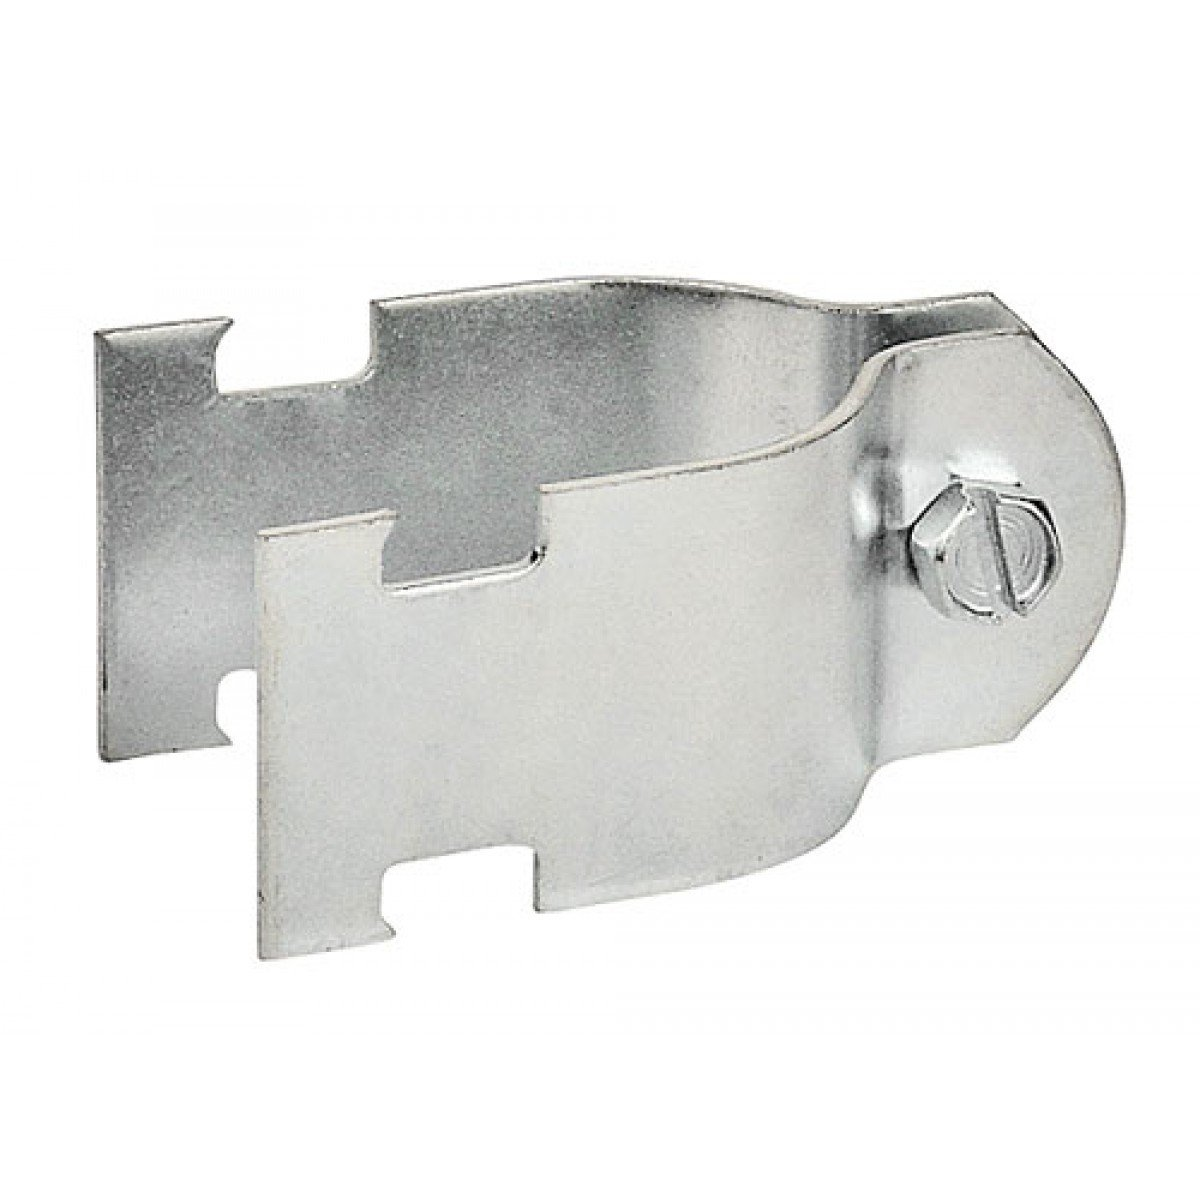 5 Pcs, 2 In. Two Piece Rigid Conduit Strut Clamp, Zinc Plated Steel Used to Mount 2In Rigid Conduits From Strut Channel